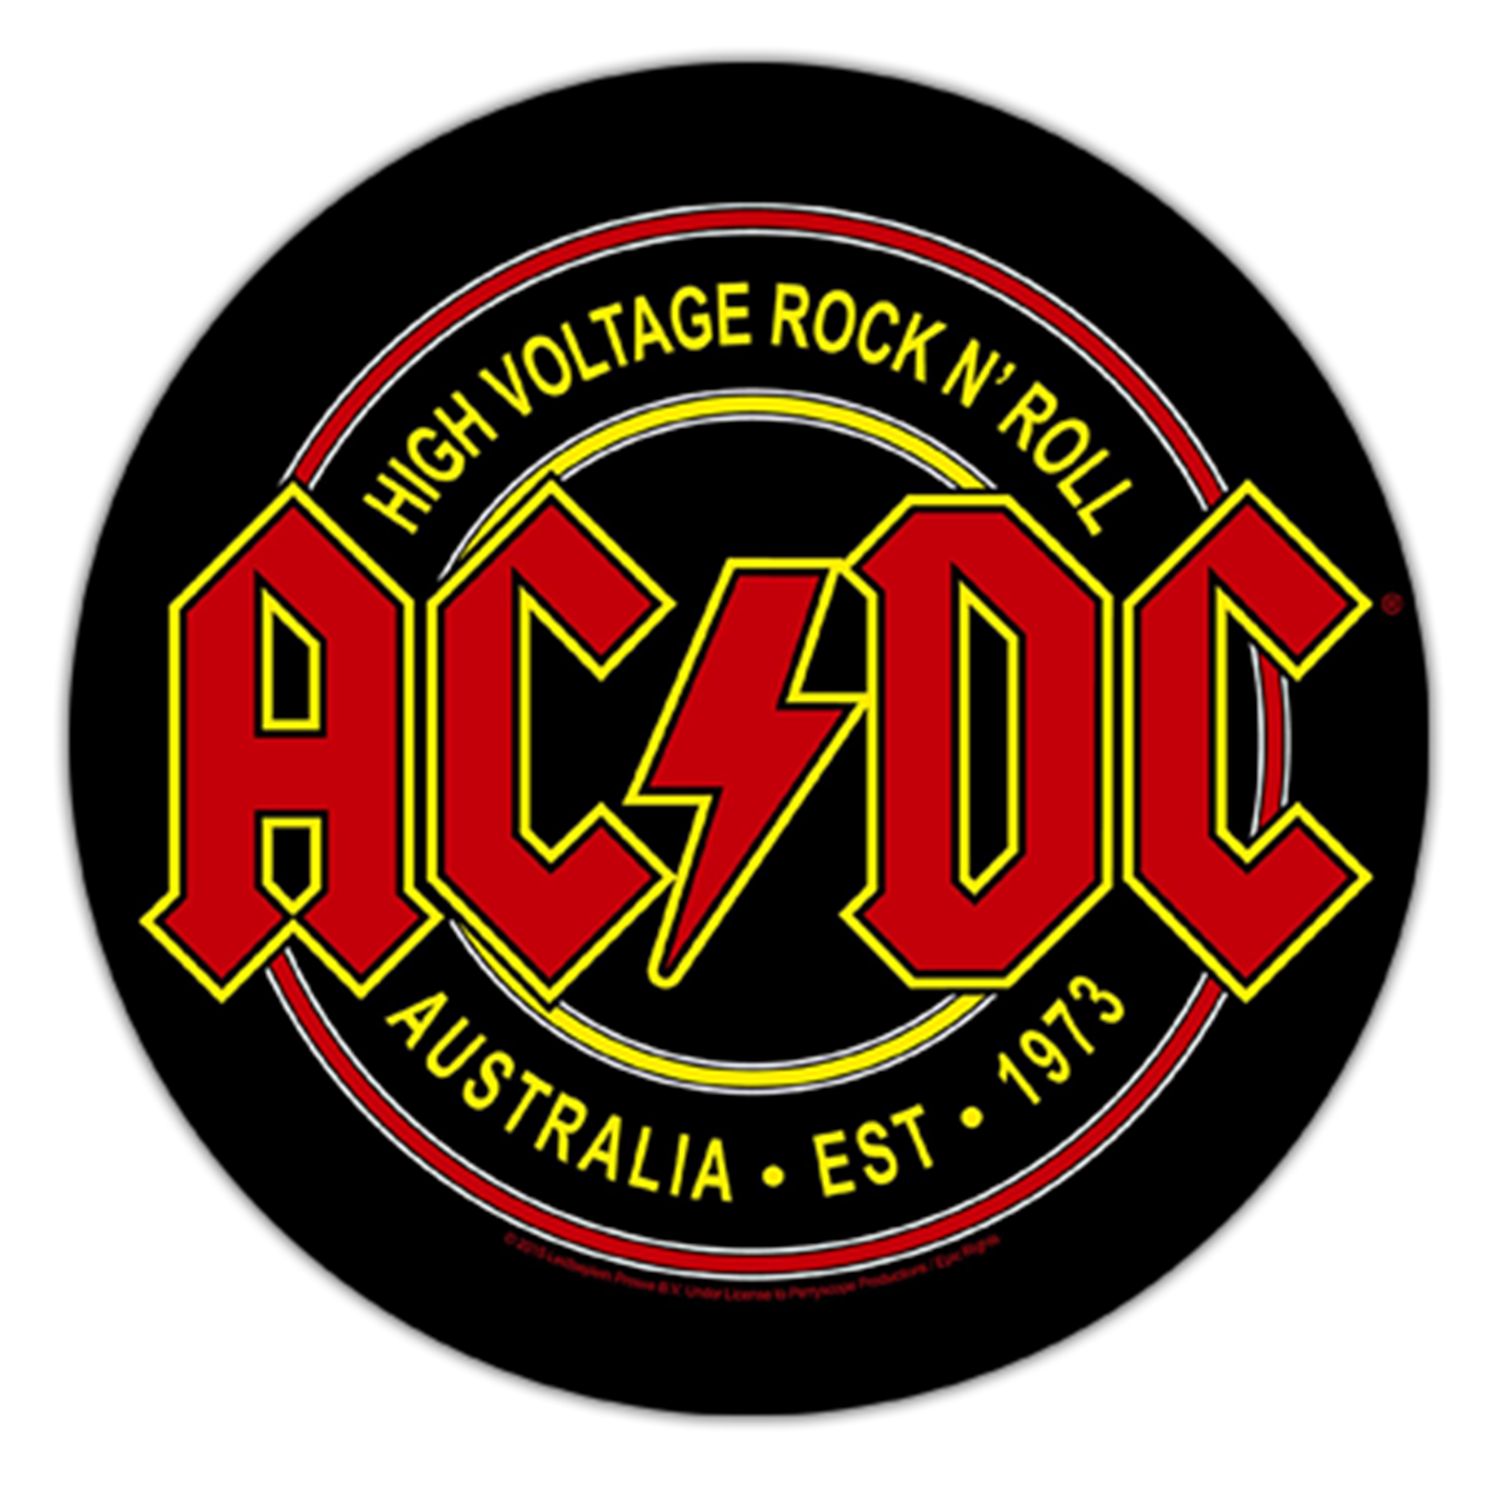 High Voltage Rock N Roll Backpatch